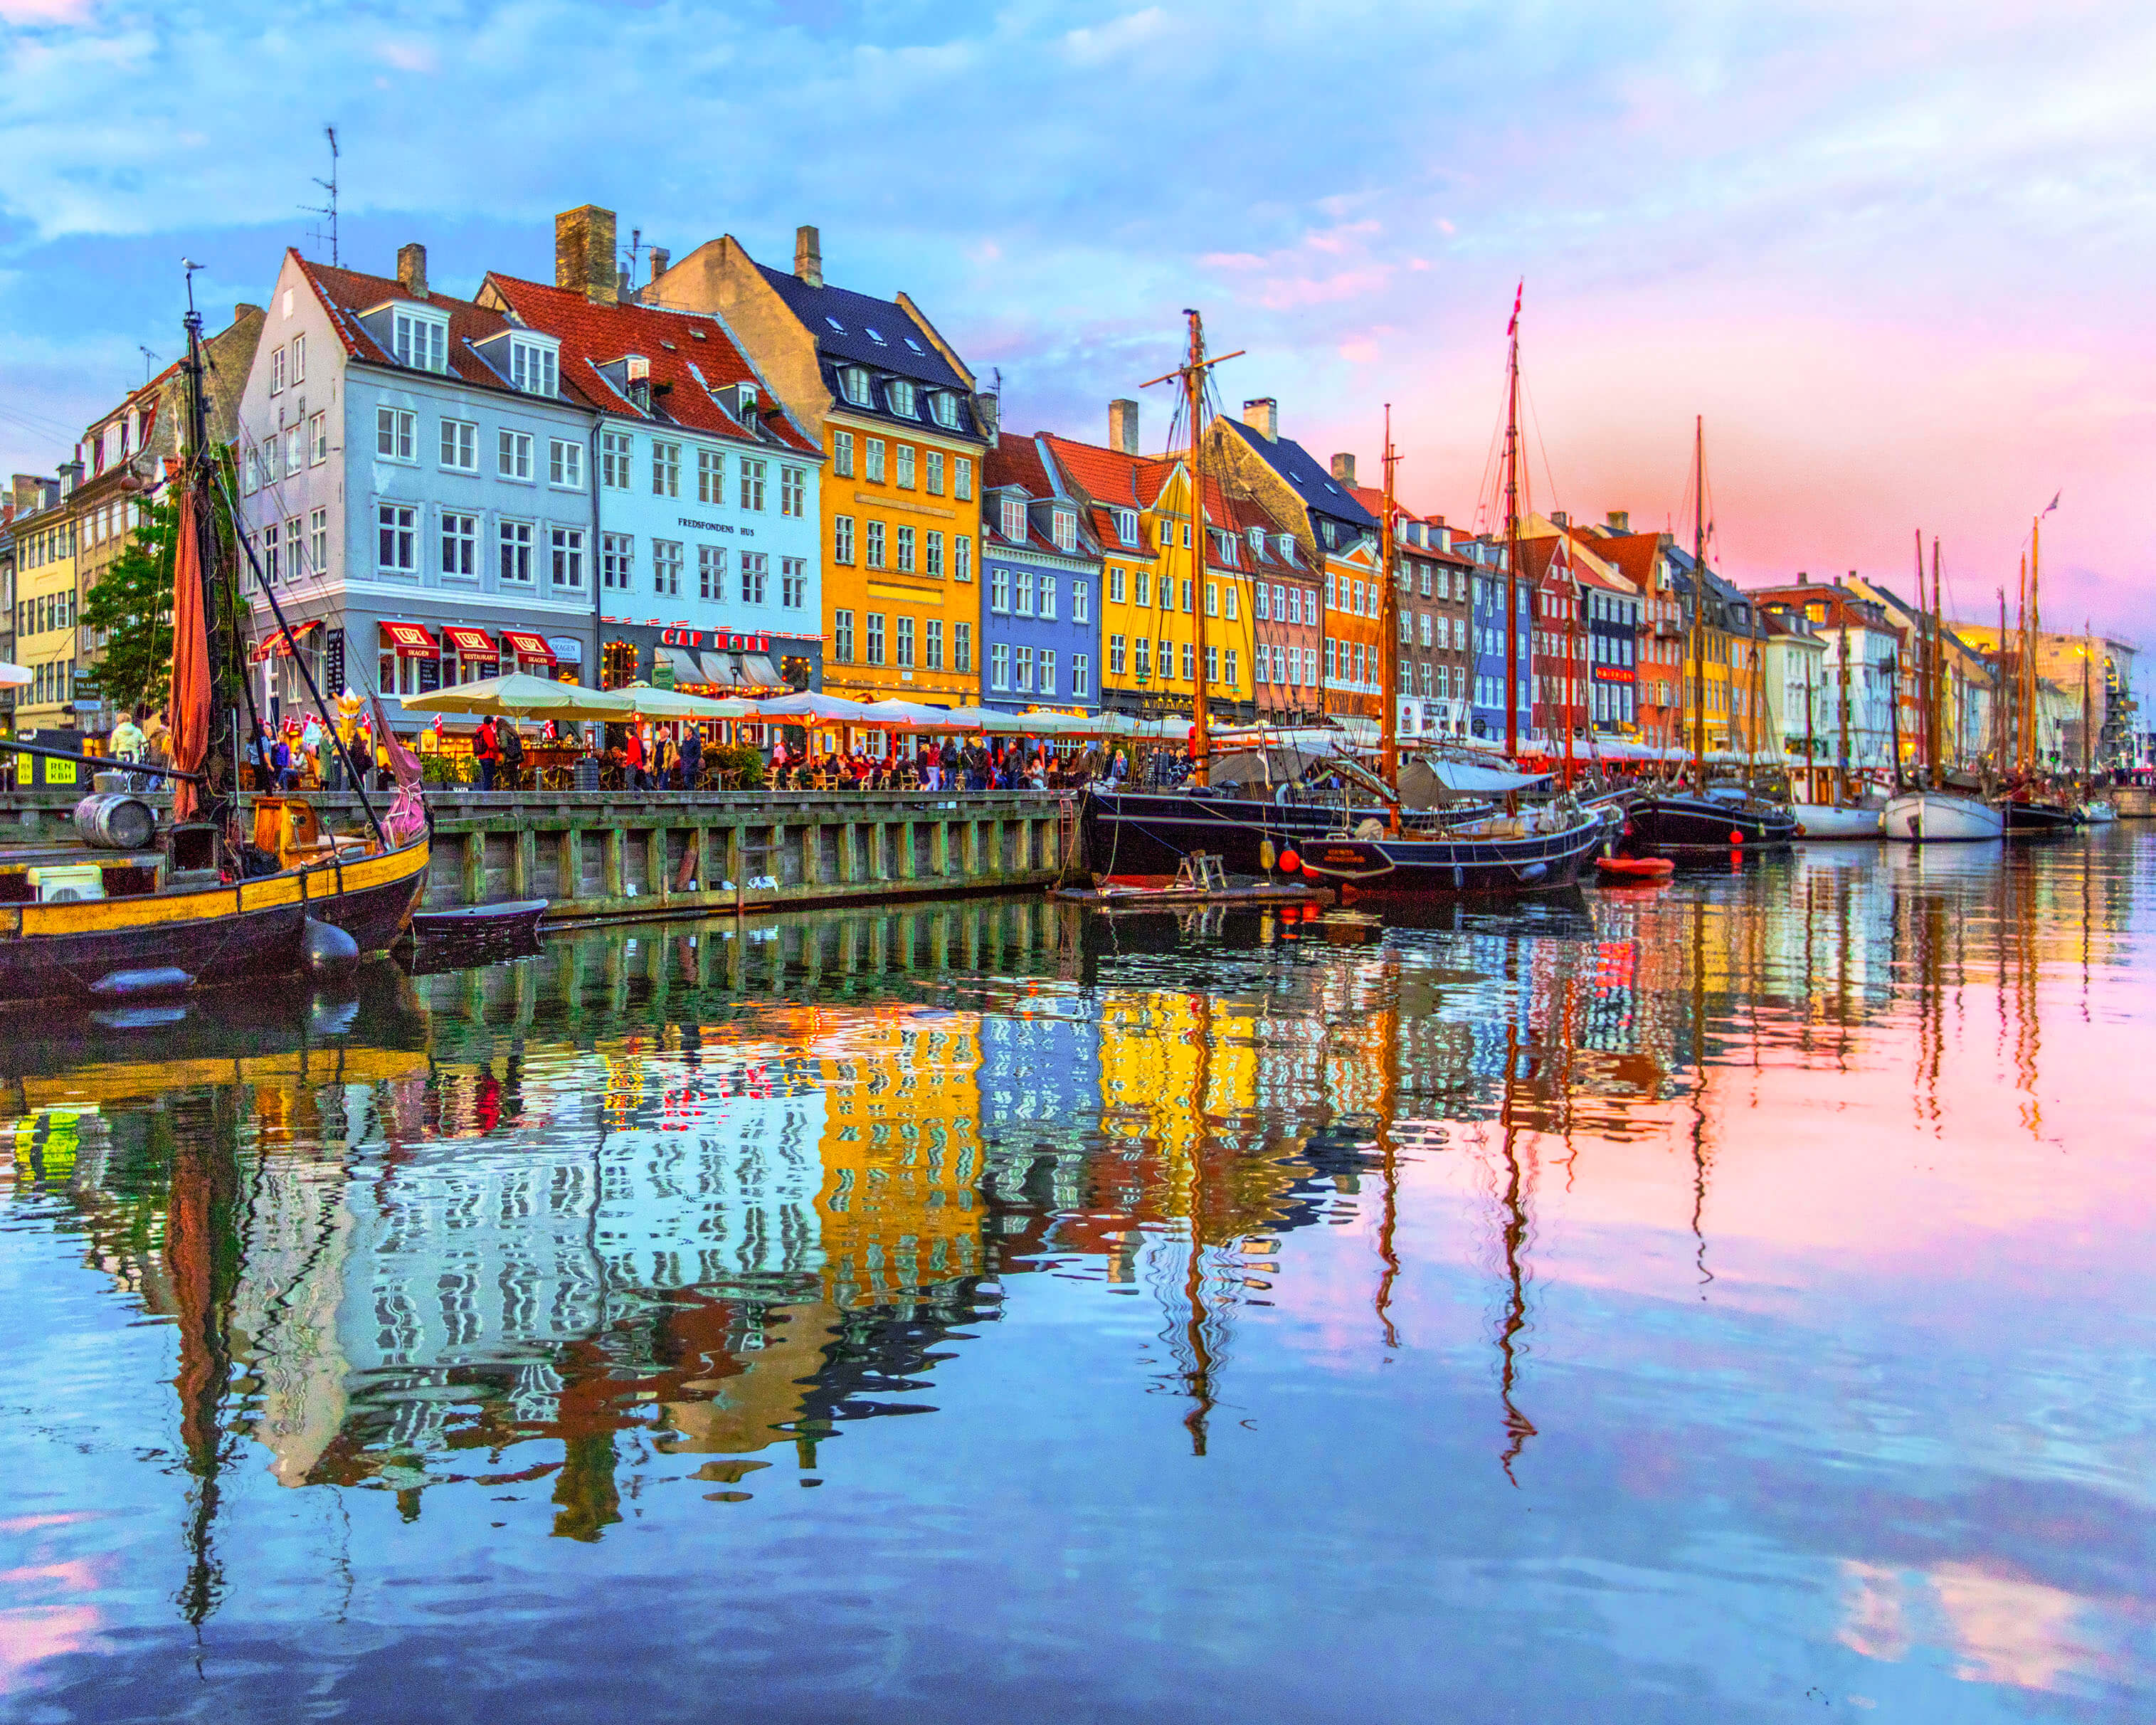 David Stern Photography: Copenhagen